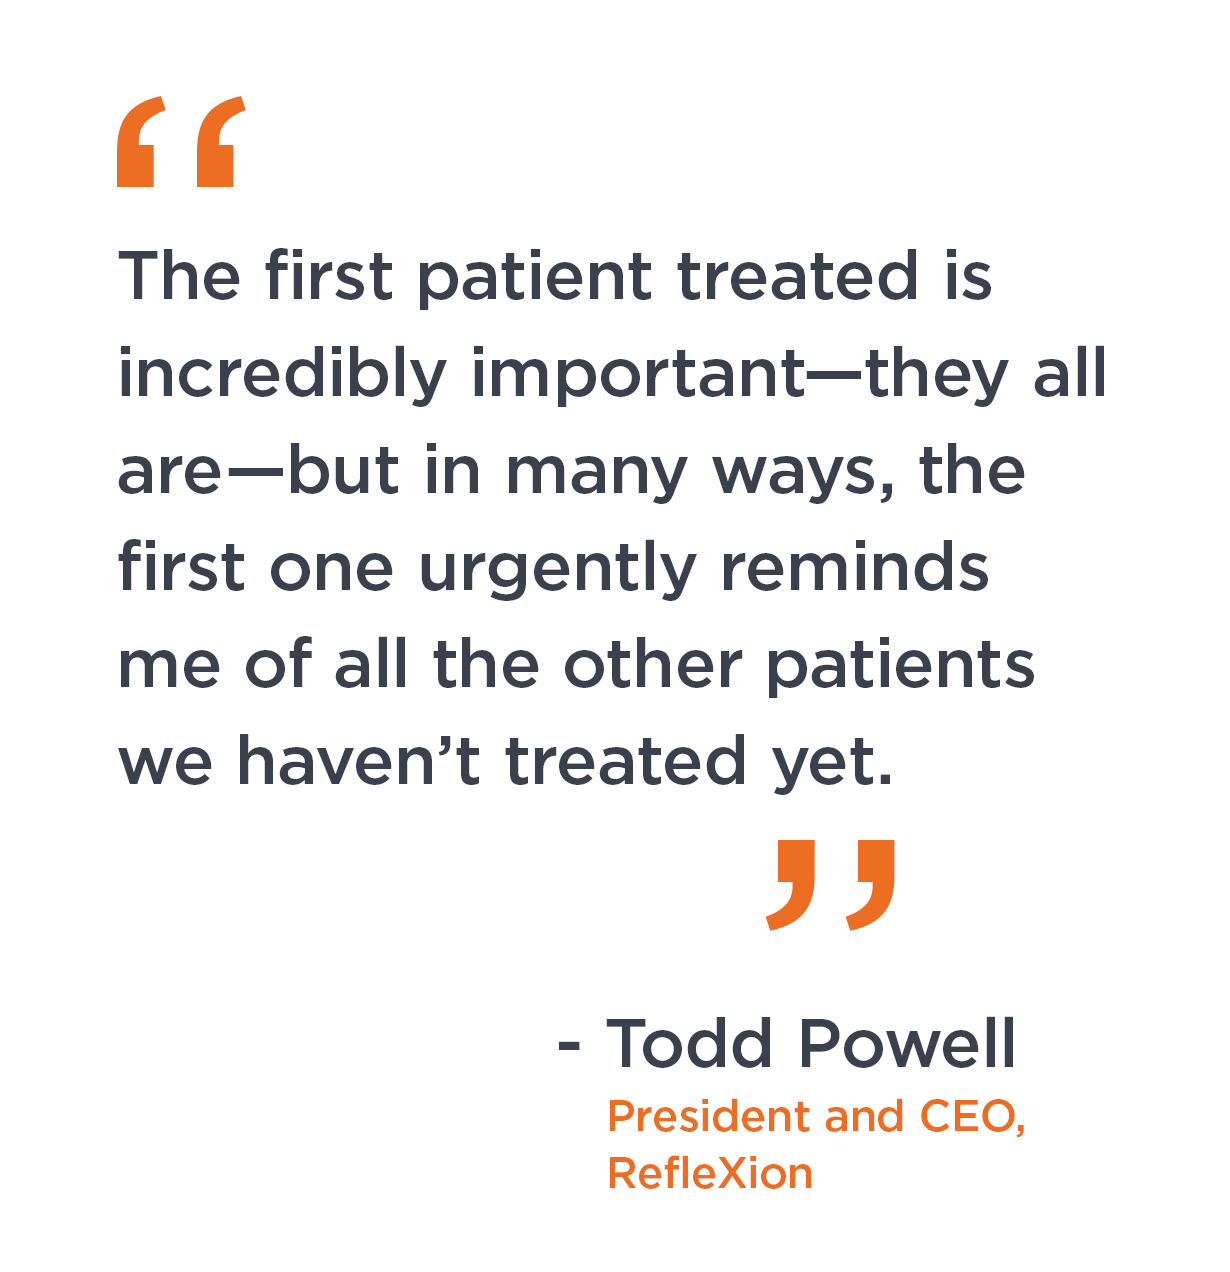 """""""The first patient treated is incredibly important—they all are—but in many ways, the first one urgently reminds me of all the other patients we haven't treated yet."""" Todd Powell, president and CEO, RefleXion."""